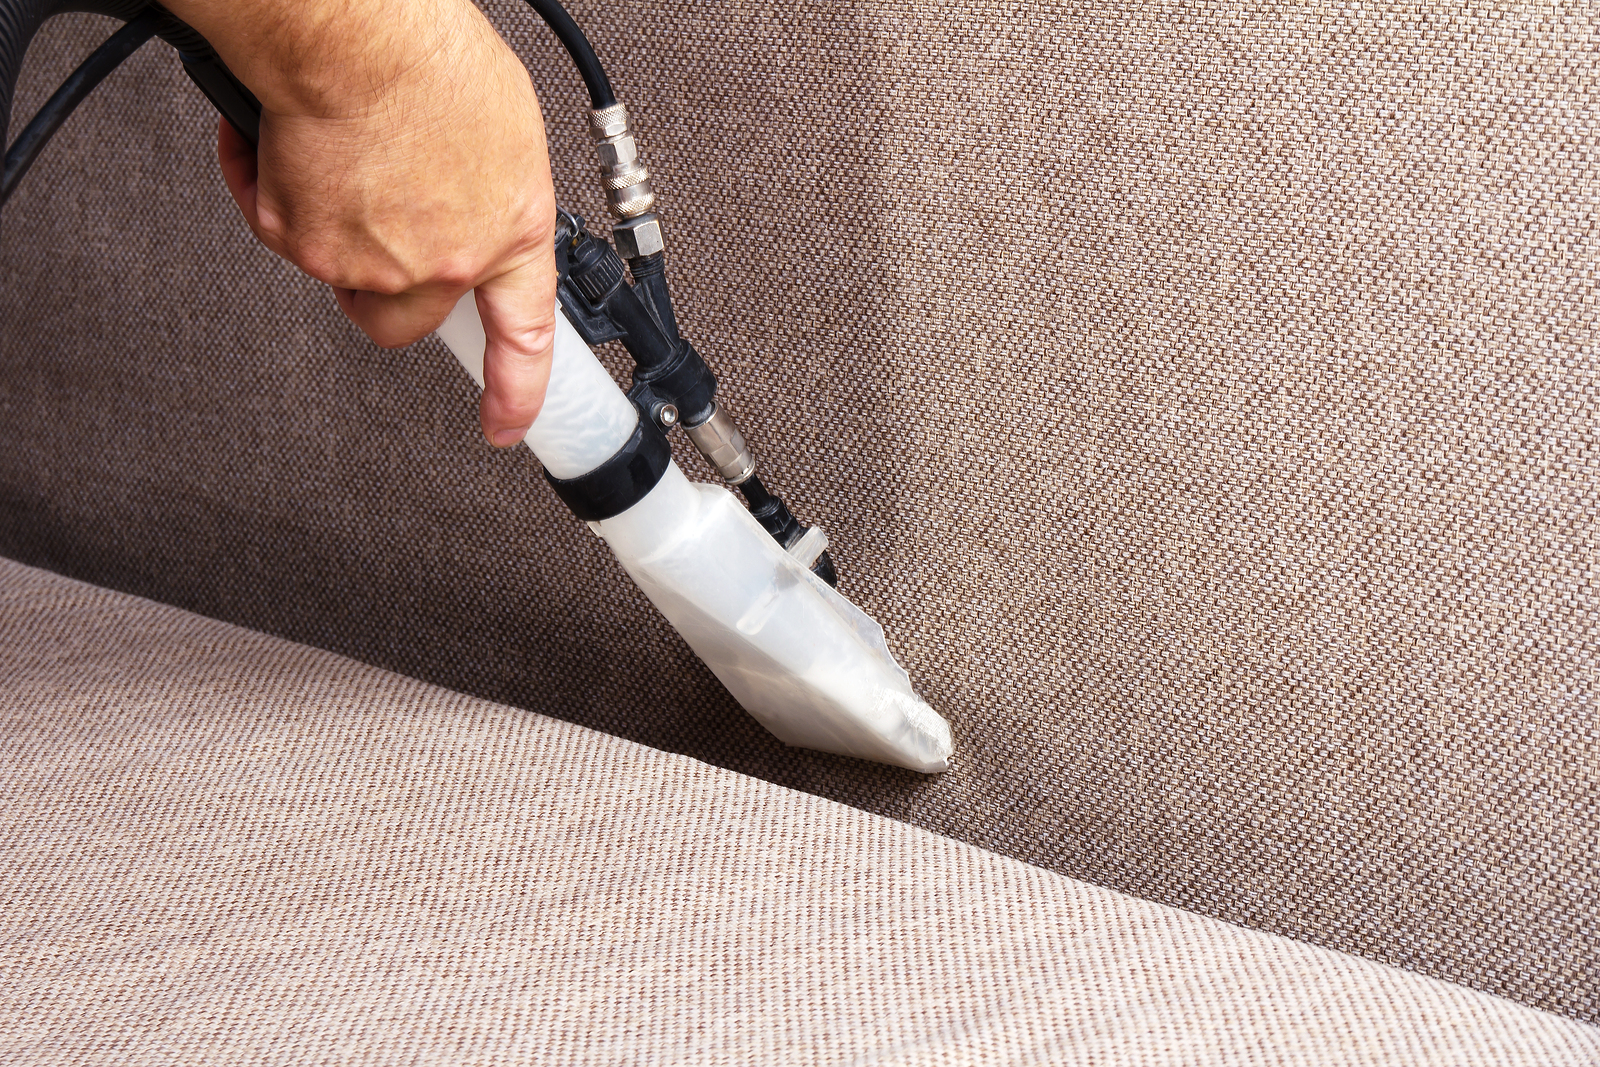 Upholstery Cleaners NJ